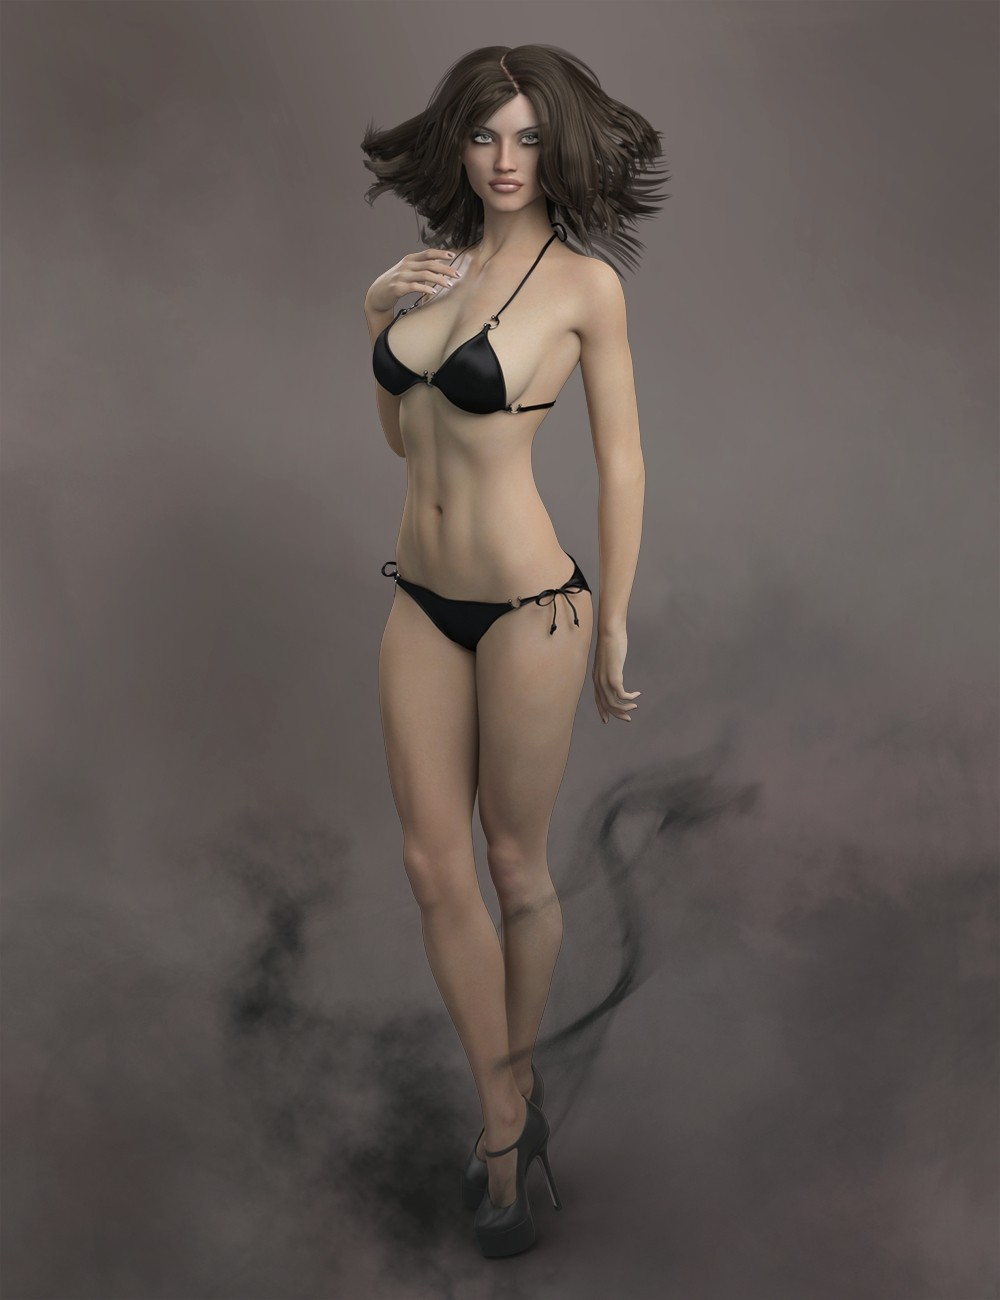 Find DAZ 3D software downloads at CNET goodellsfirstchain.tk, the most comprehensive source for safe, trusted, and spyware-free downloads on the Web.